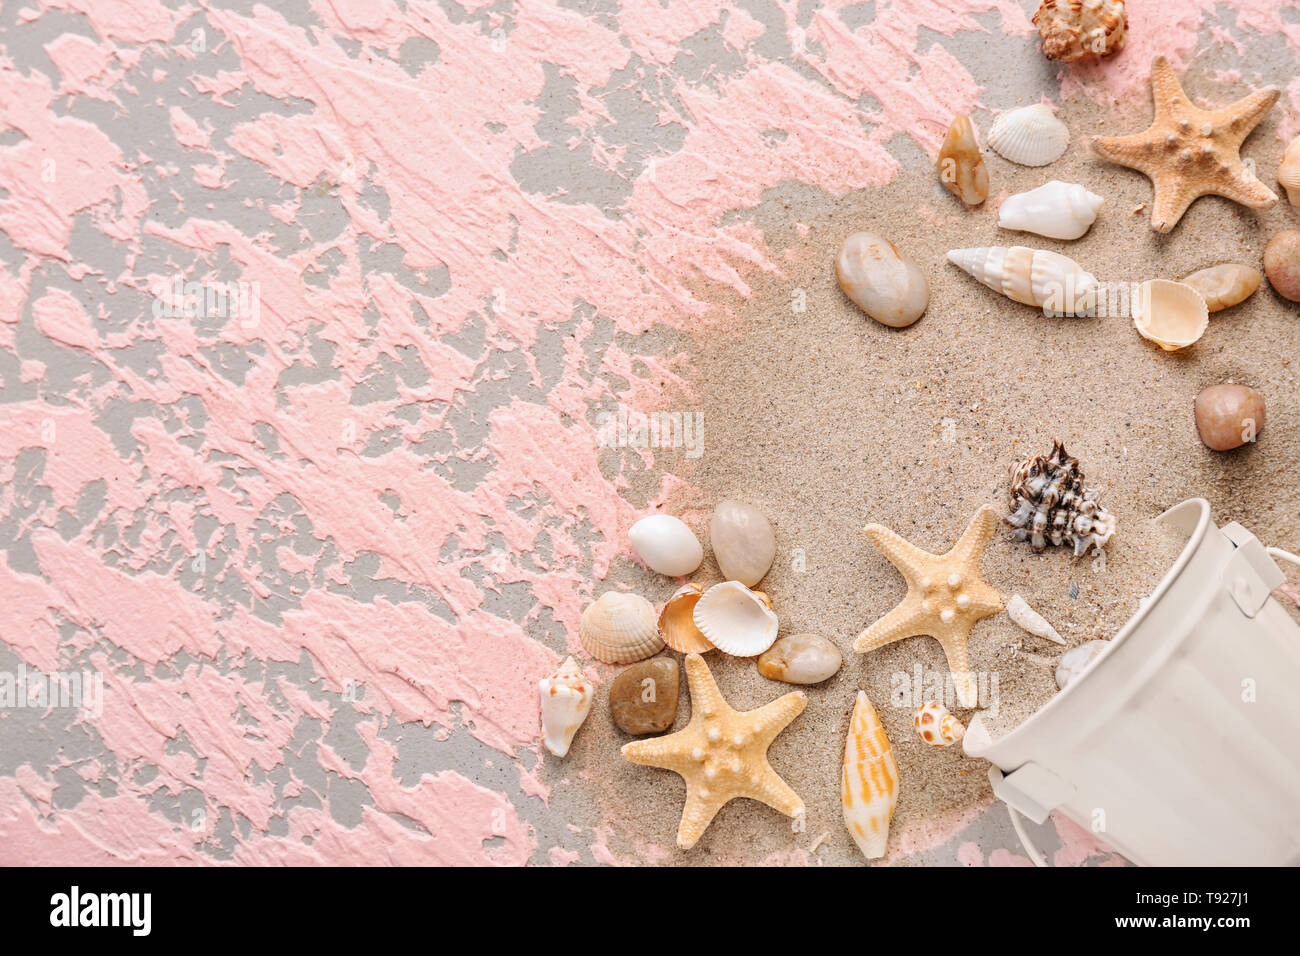 Overturned bucket with with different sea shells and sand on color background - Stock Image